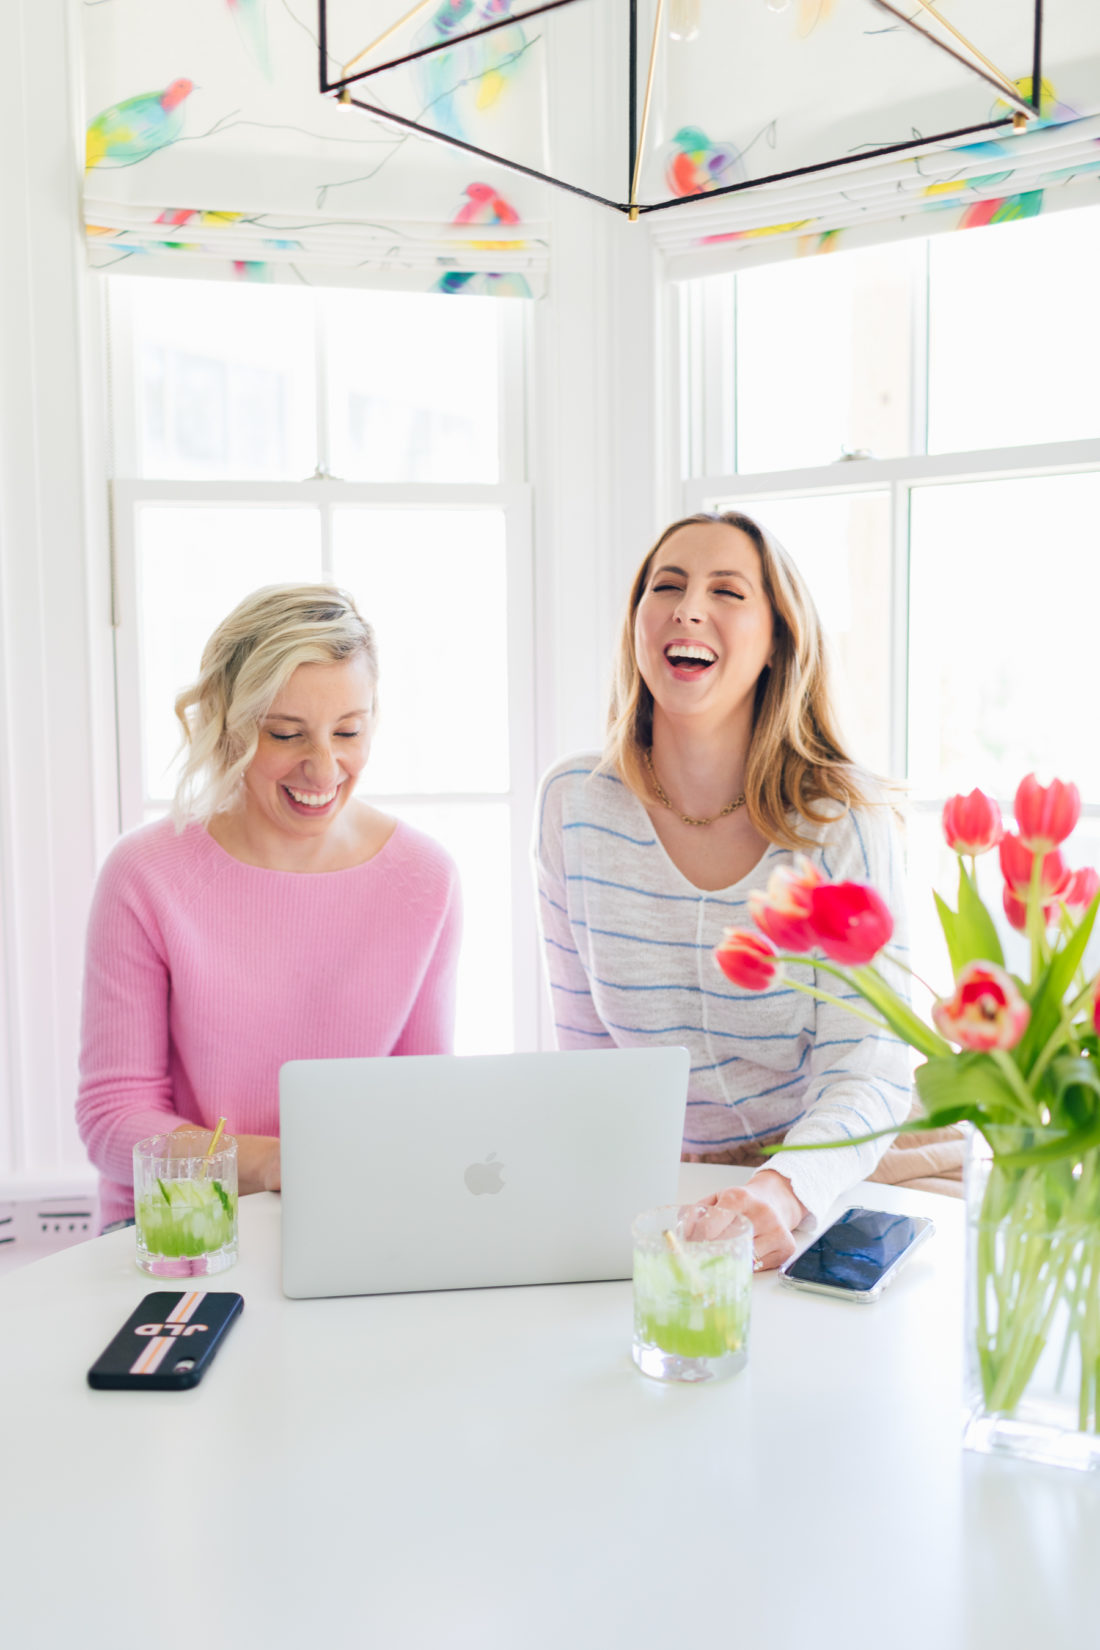 Eva Amurri Martino of Happily Eva After and Julia Dzafic of Lemon Stripes sit at a computer drinking margaritas and reminiscing on their parenting style